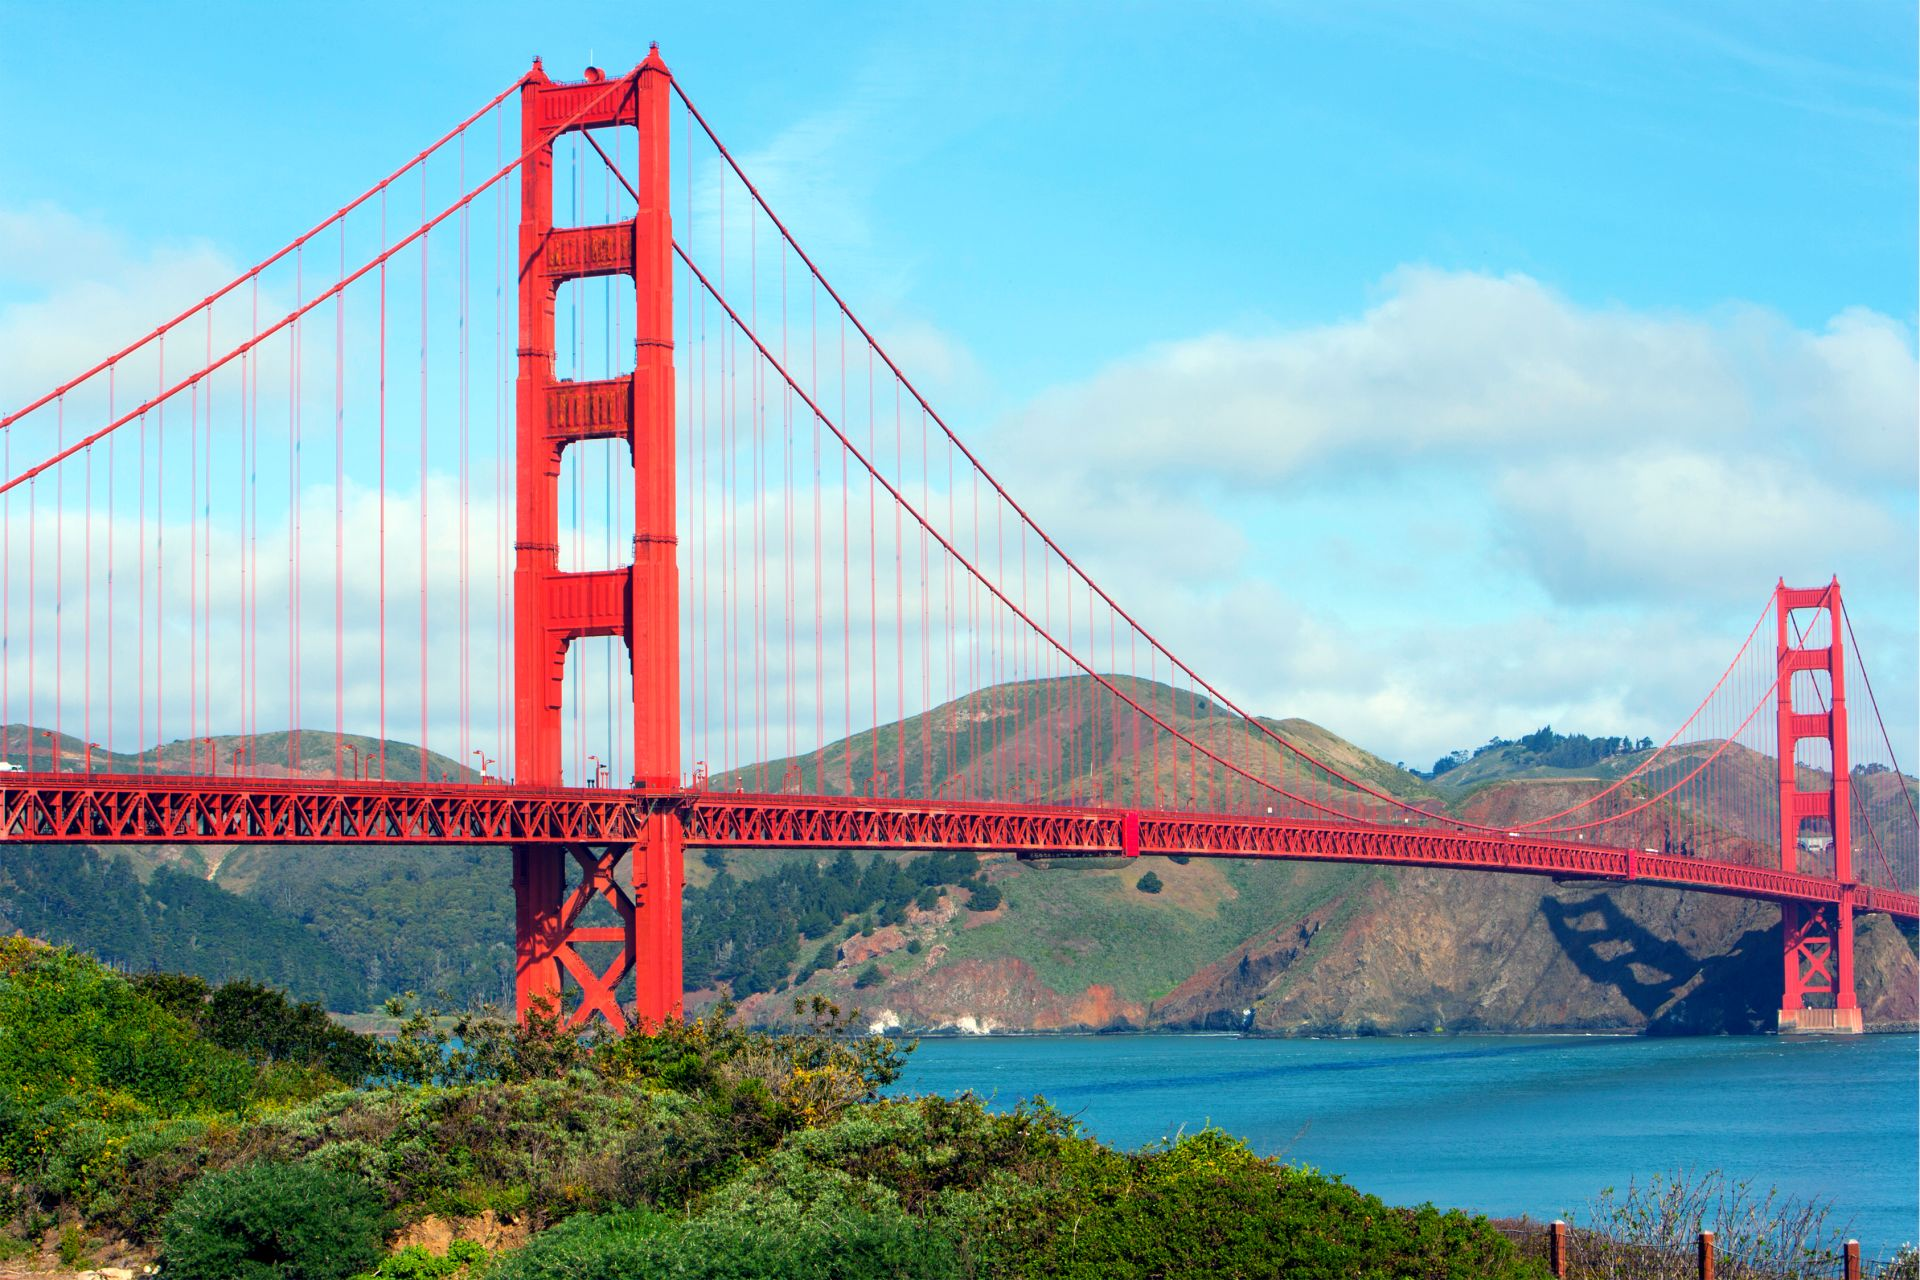 Facts About Golden Gate Bridge | DK Find Out